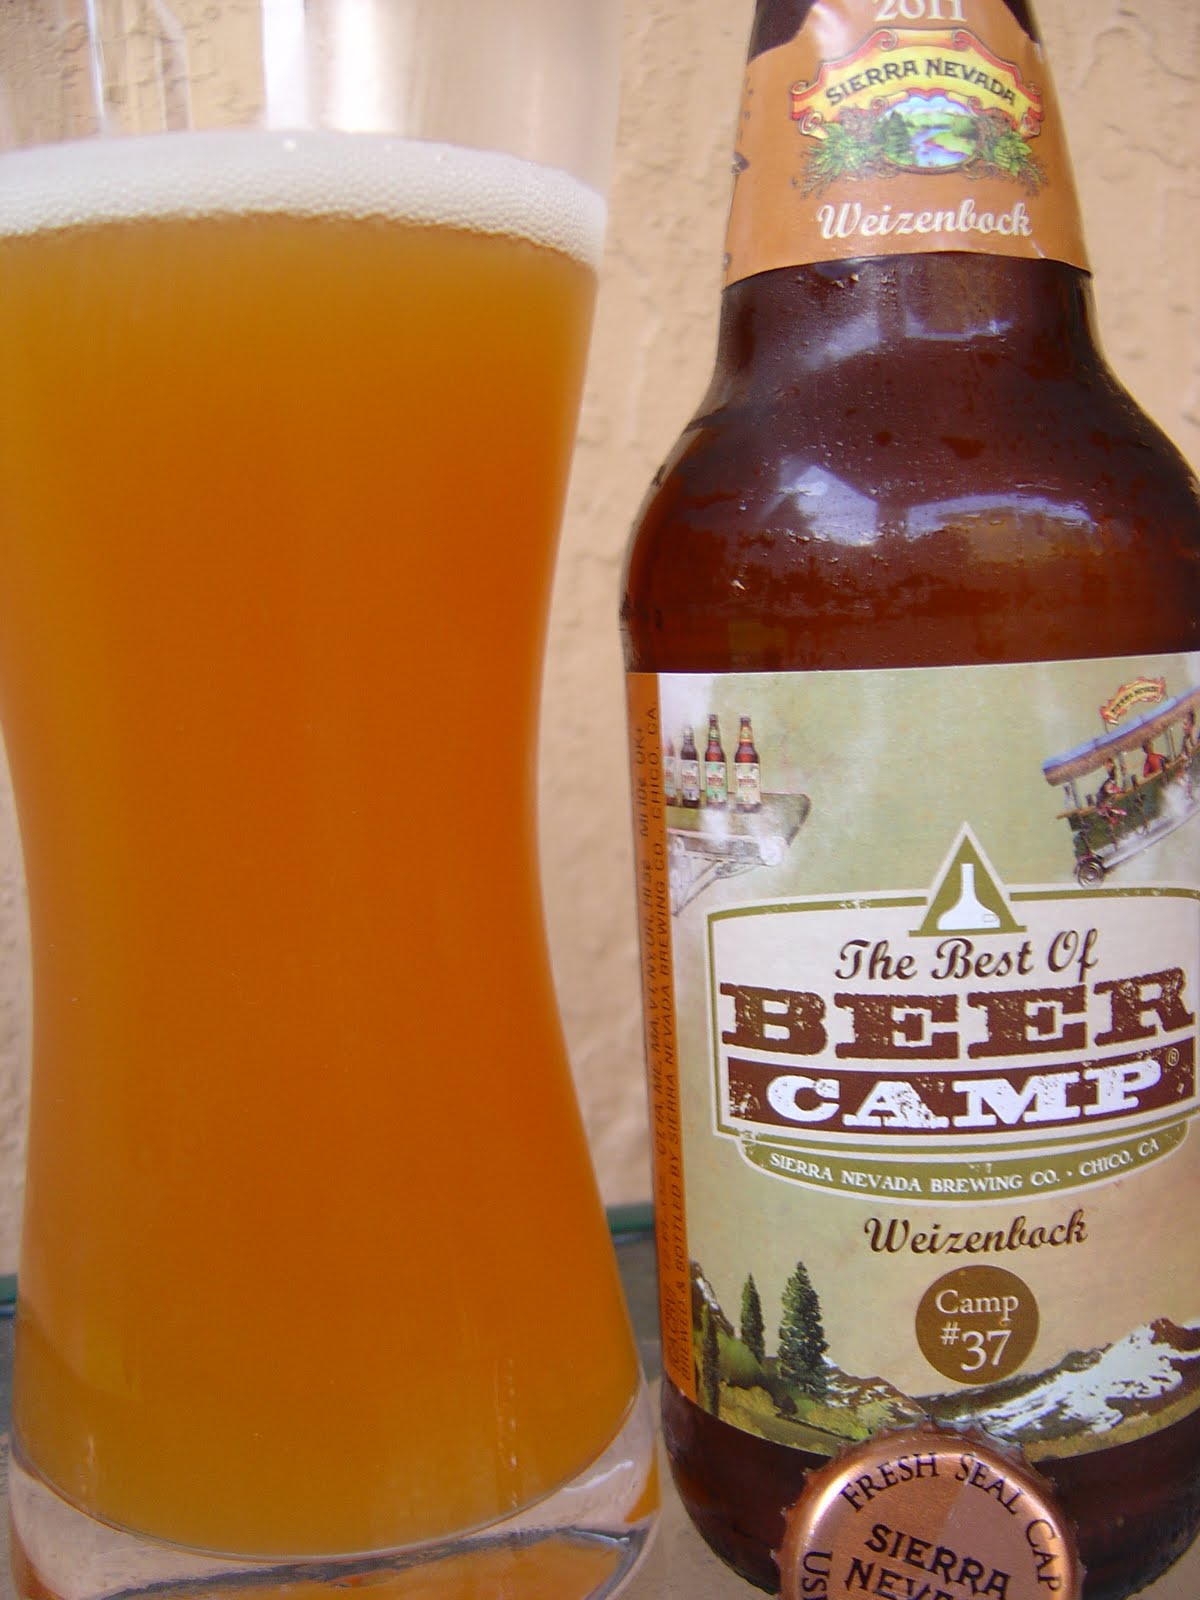 37 Best Images About Chifferobe Project On Pinterest: Daily Beer Review: The Best Of Beer Camp: #37 Weizenbock